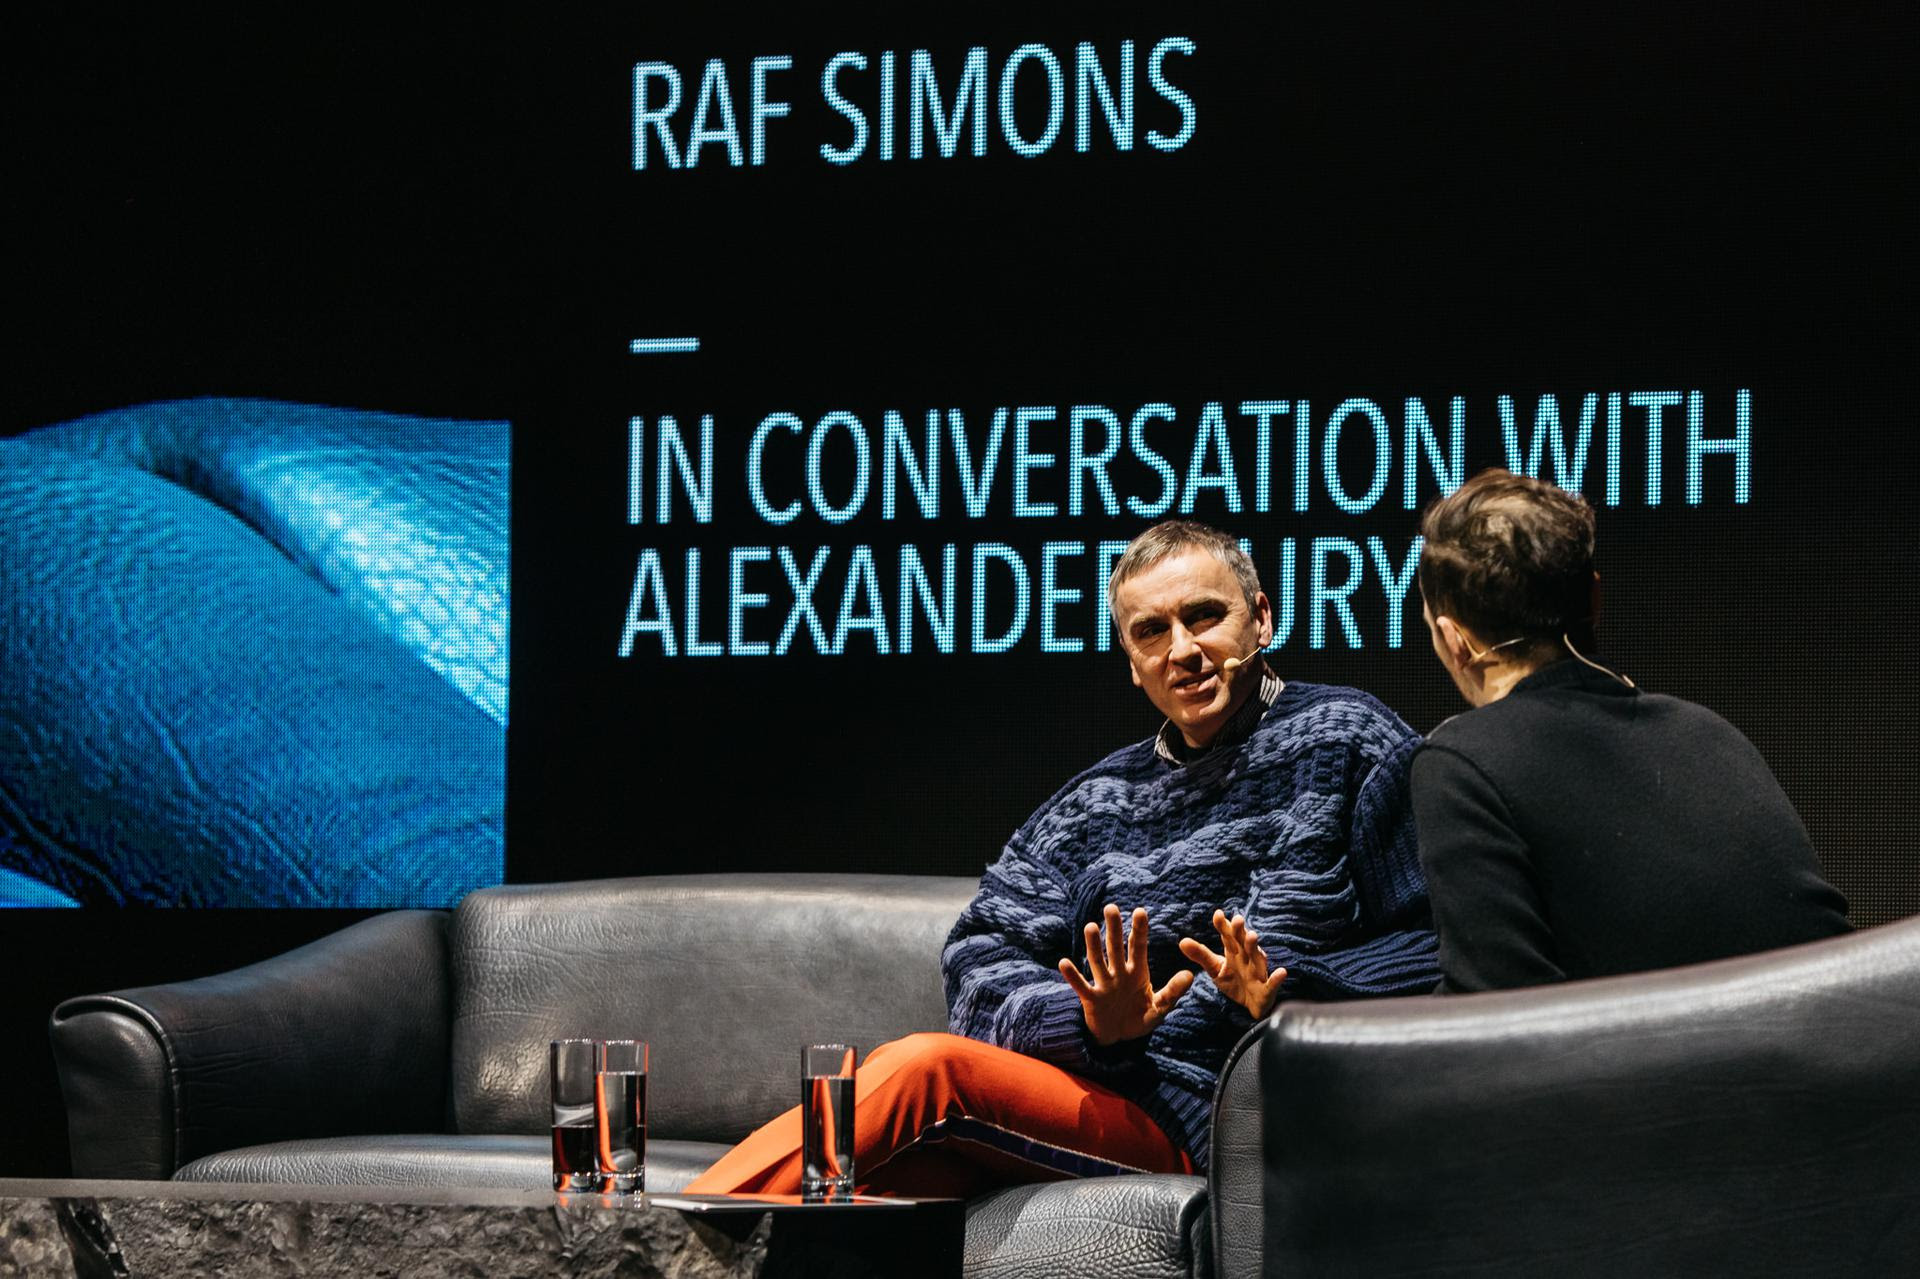 BELGIAN FASHION AWARDS & FASHION TALKS 2019 // Raf Simons, Glenn Martens, Christian Wijnants